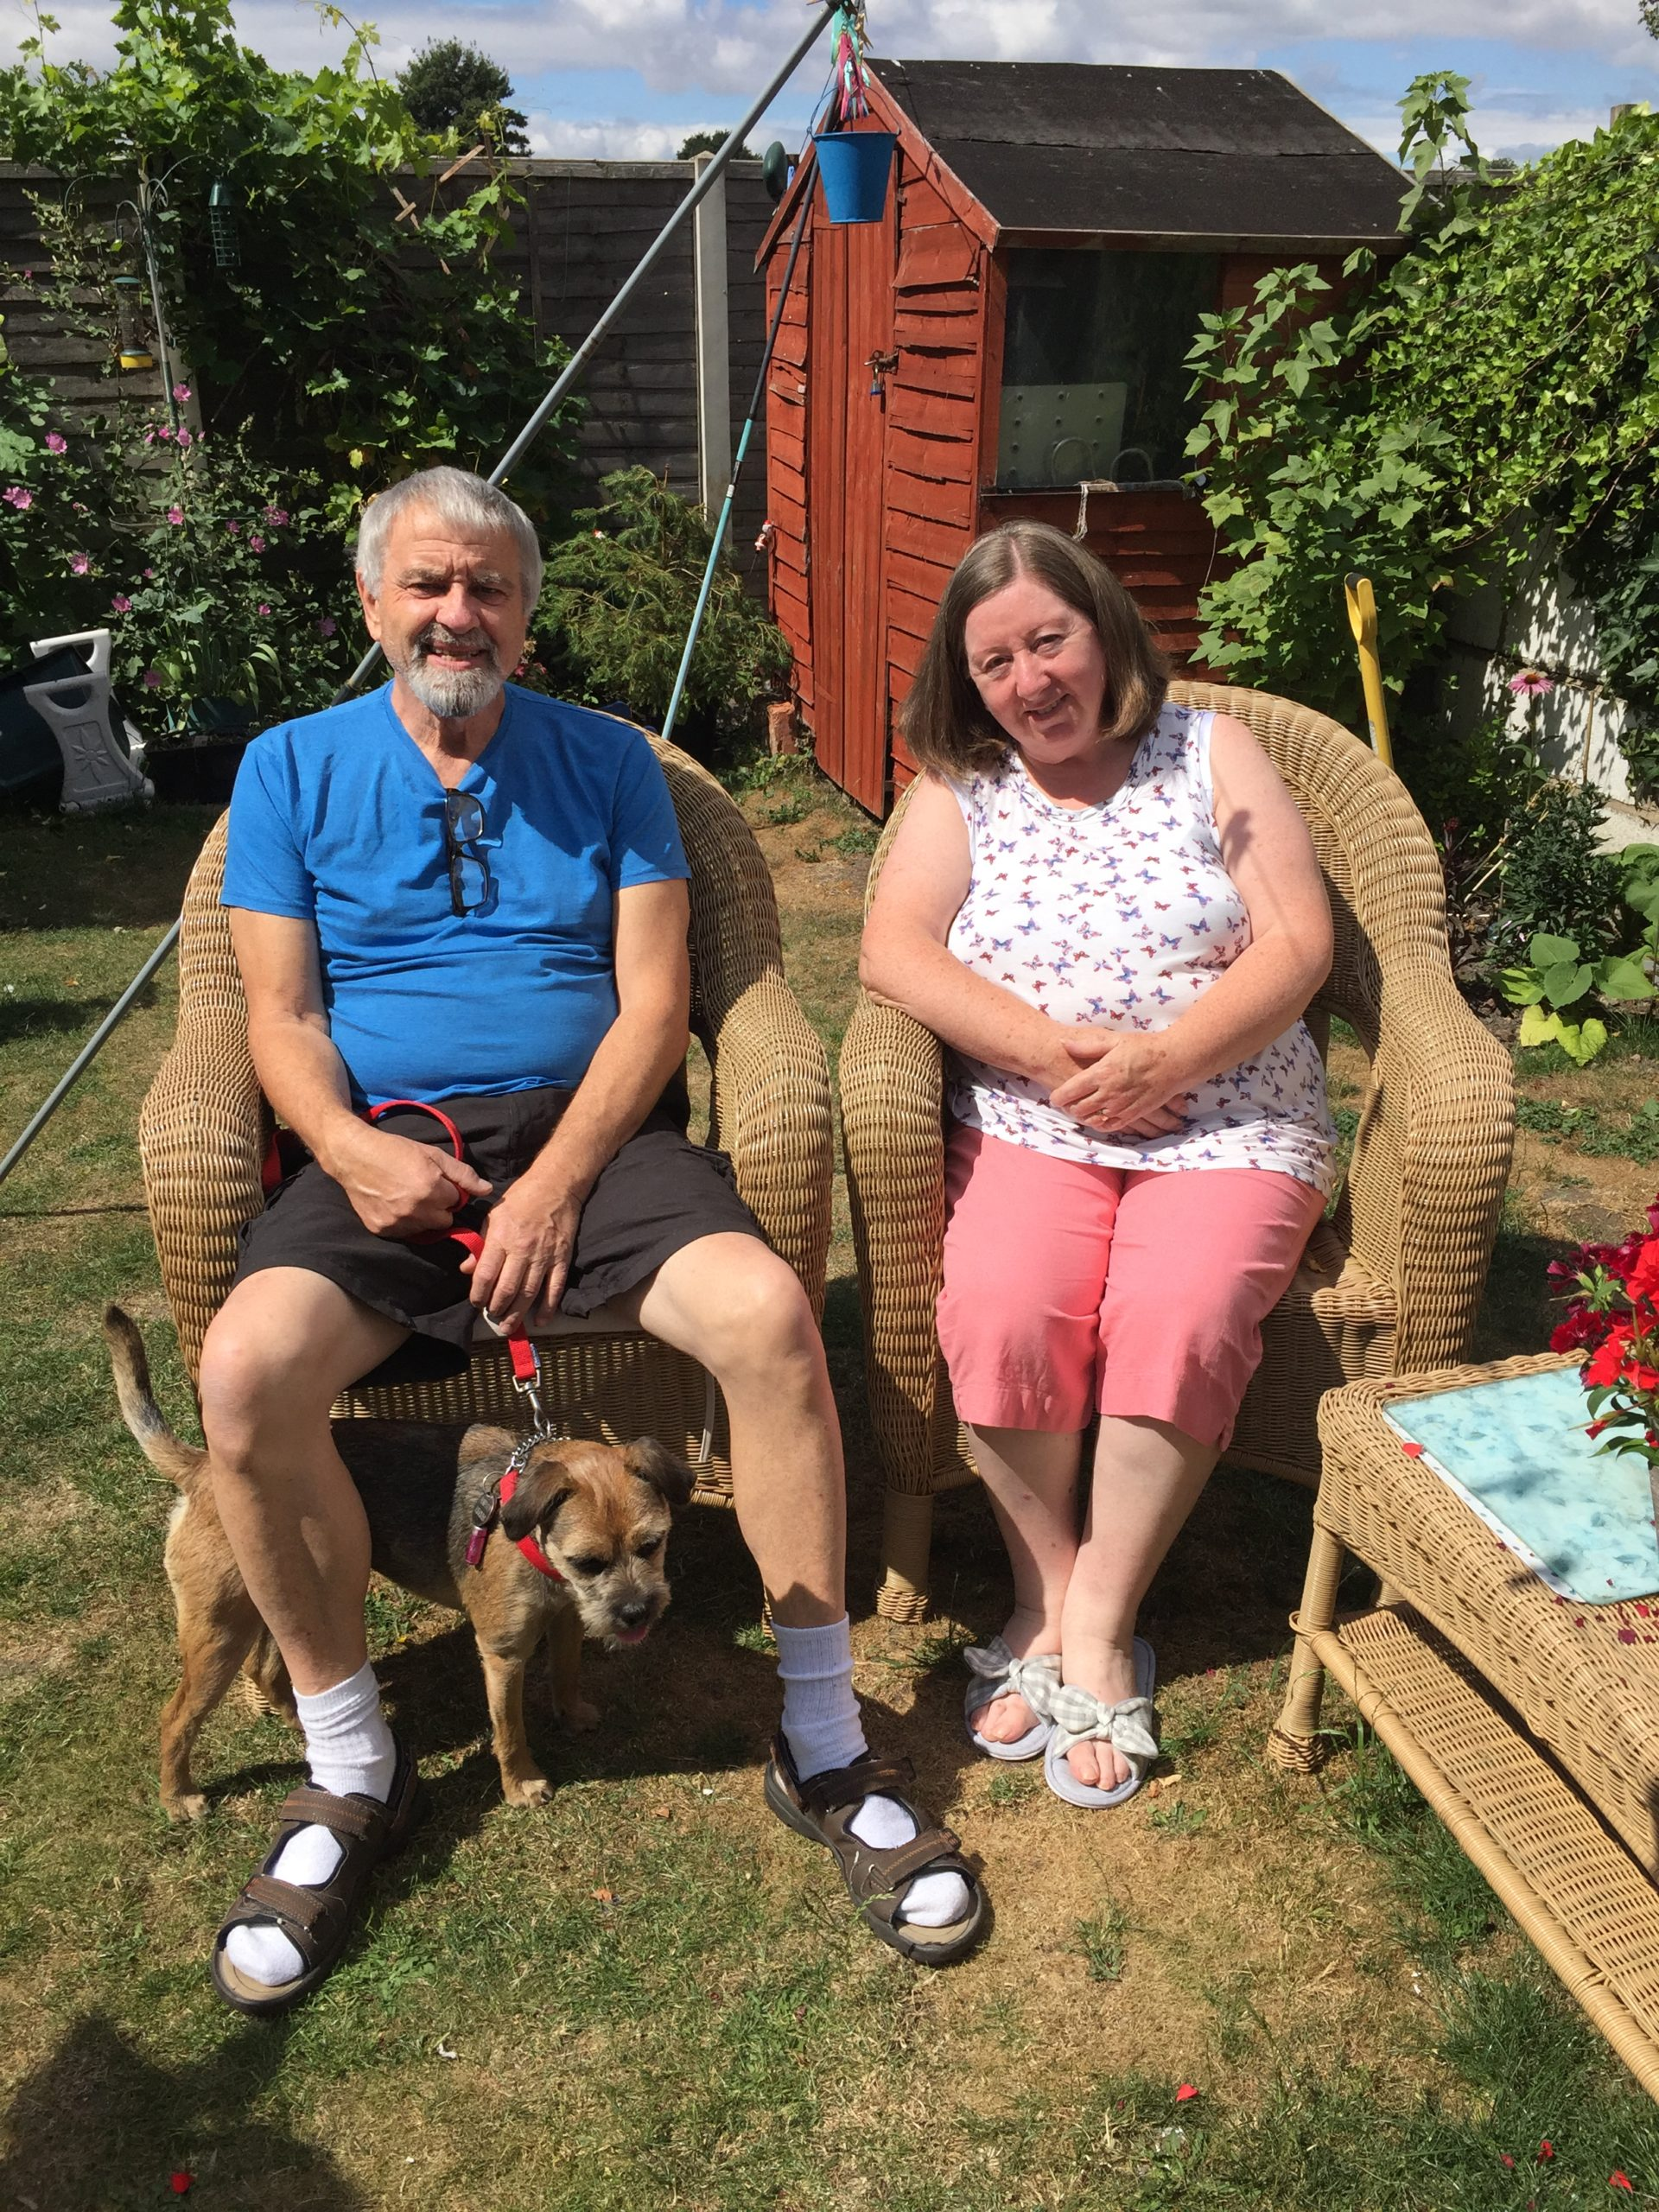 Volunteer Dog Carer Barking Mad Hosts John And Meg Abraham